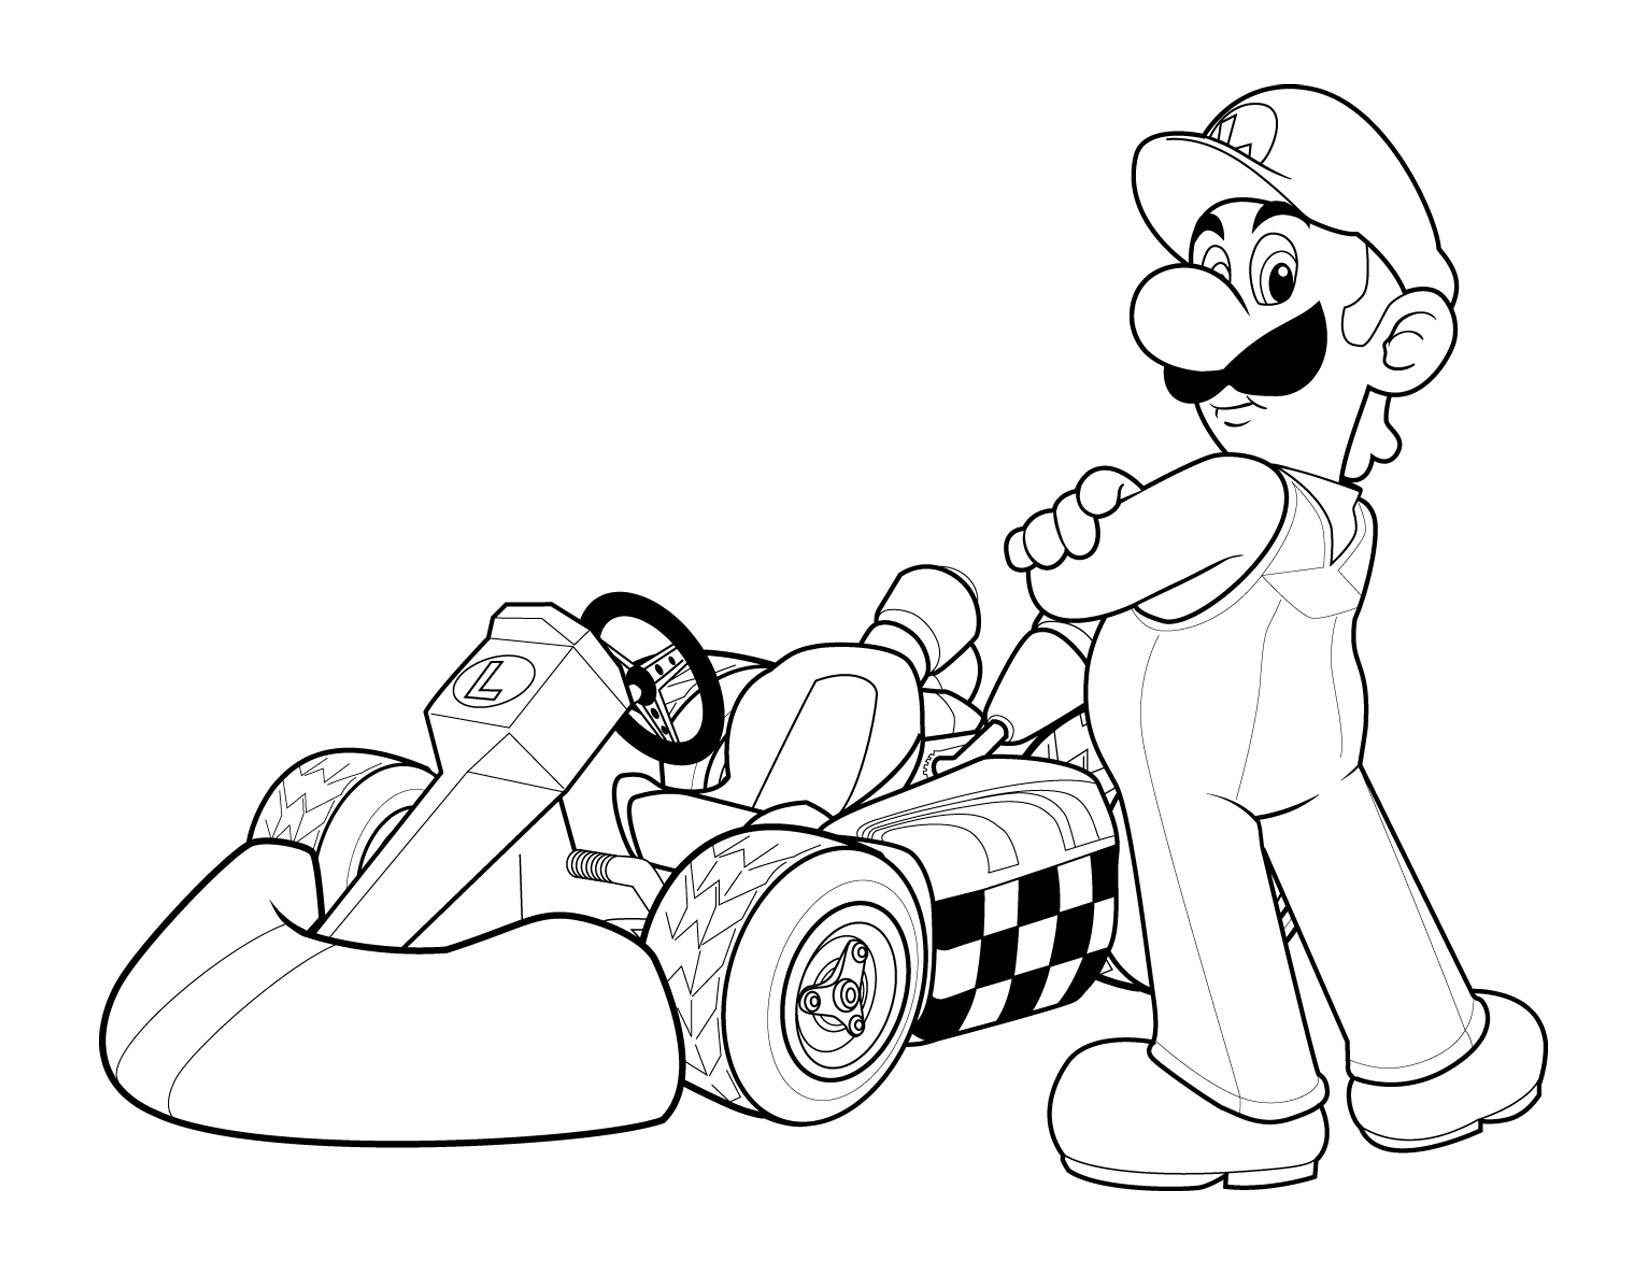 Mario Kart Coloring Pages  Free Printable Mario Coloring Pages For Kids